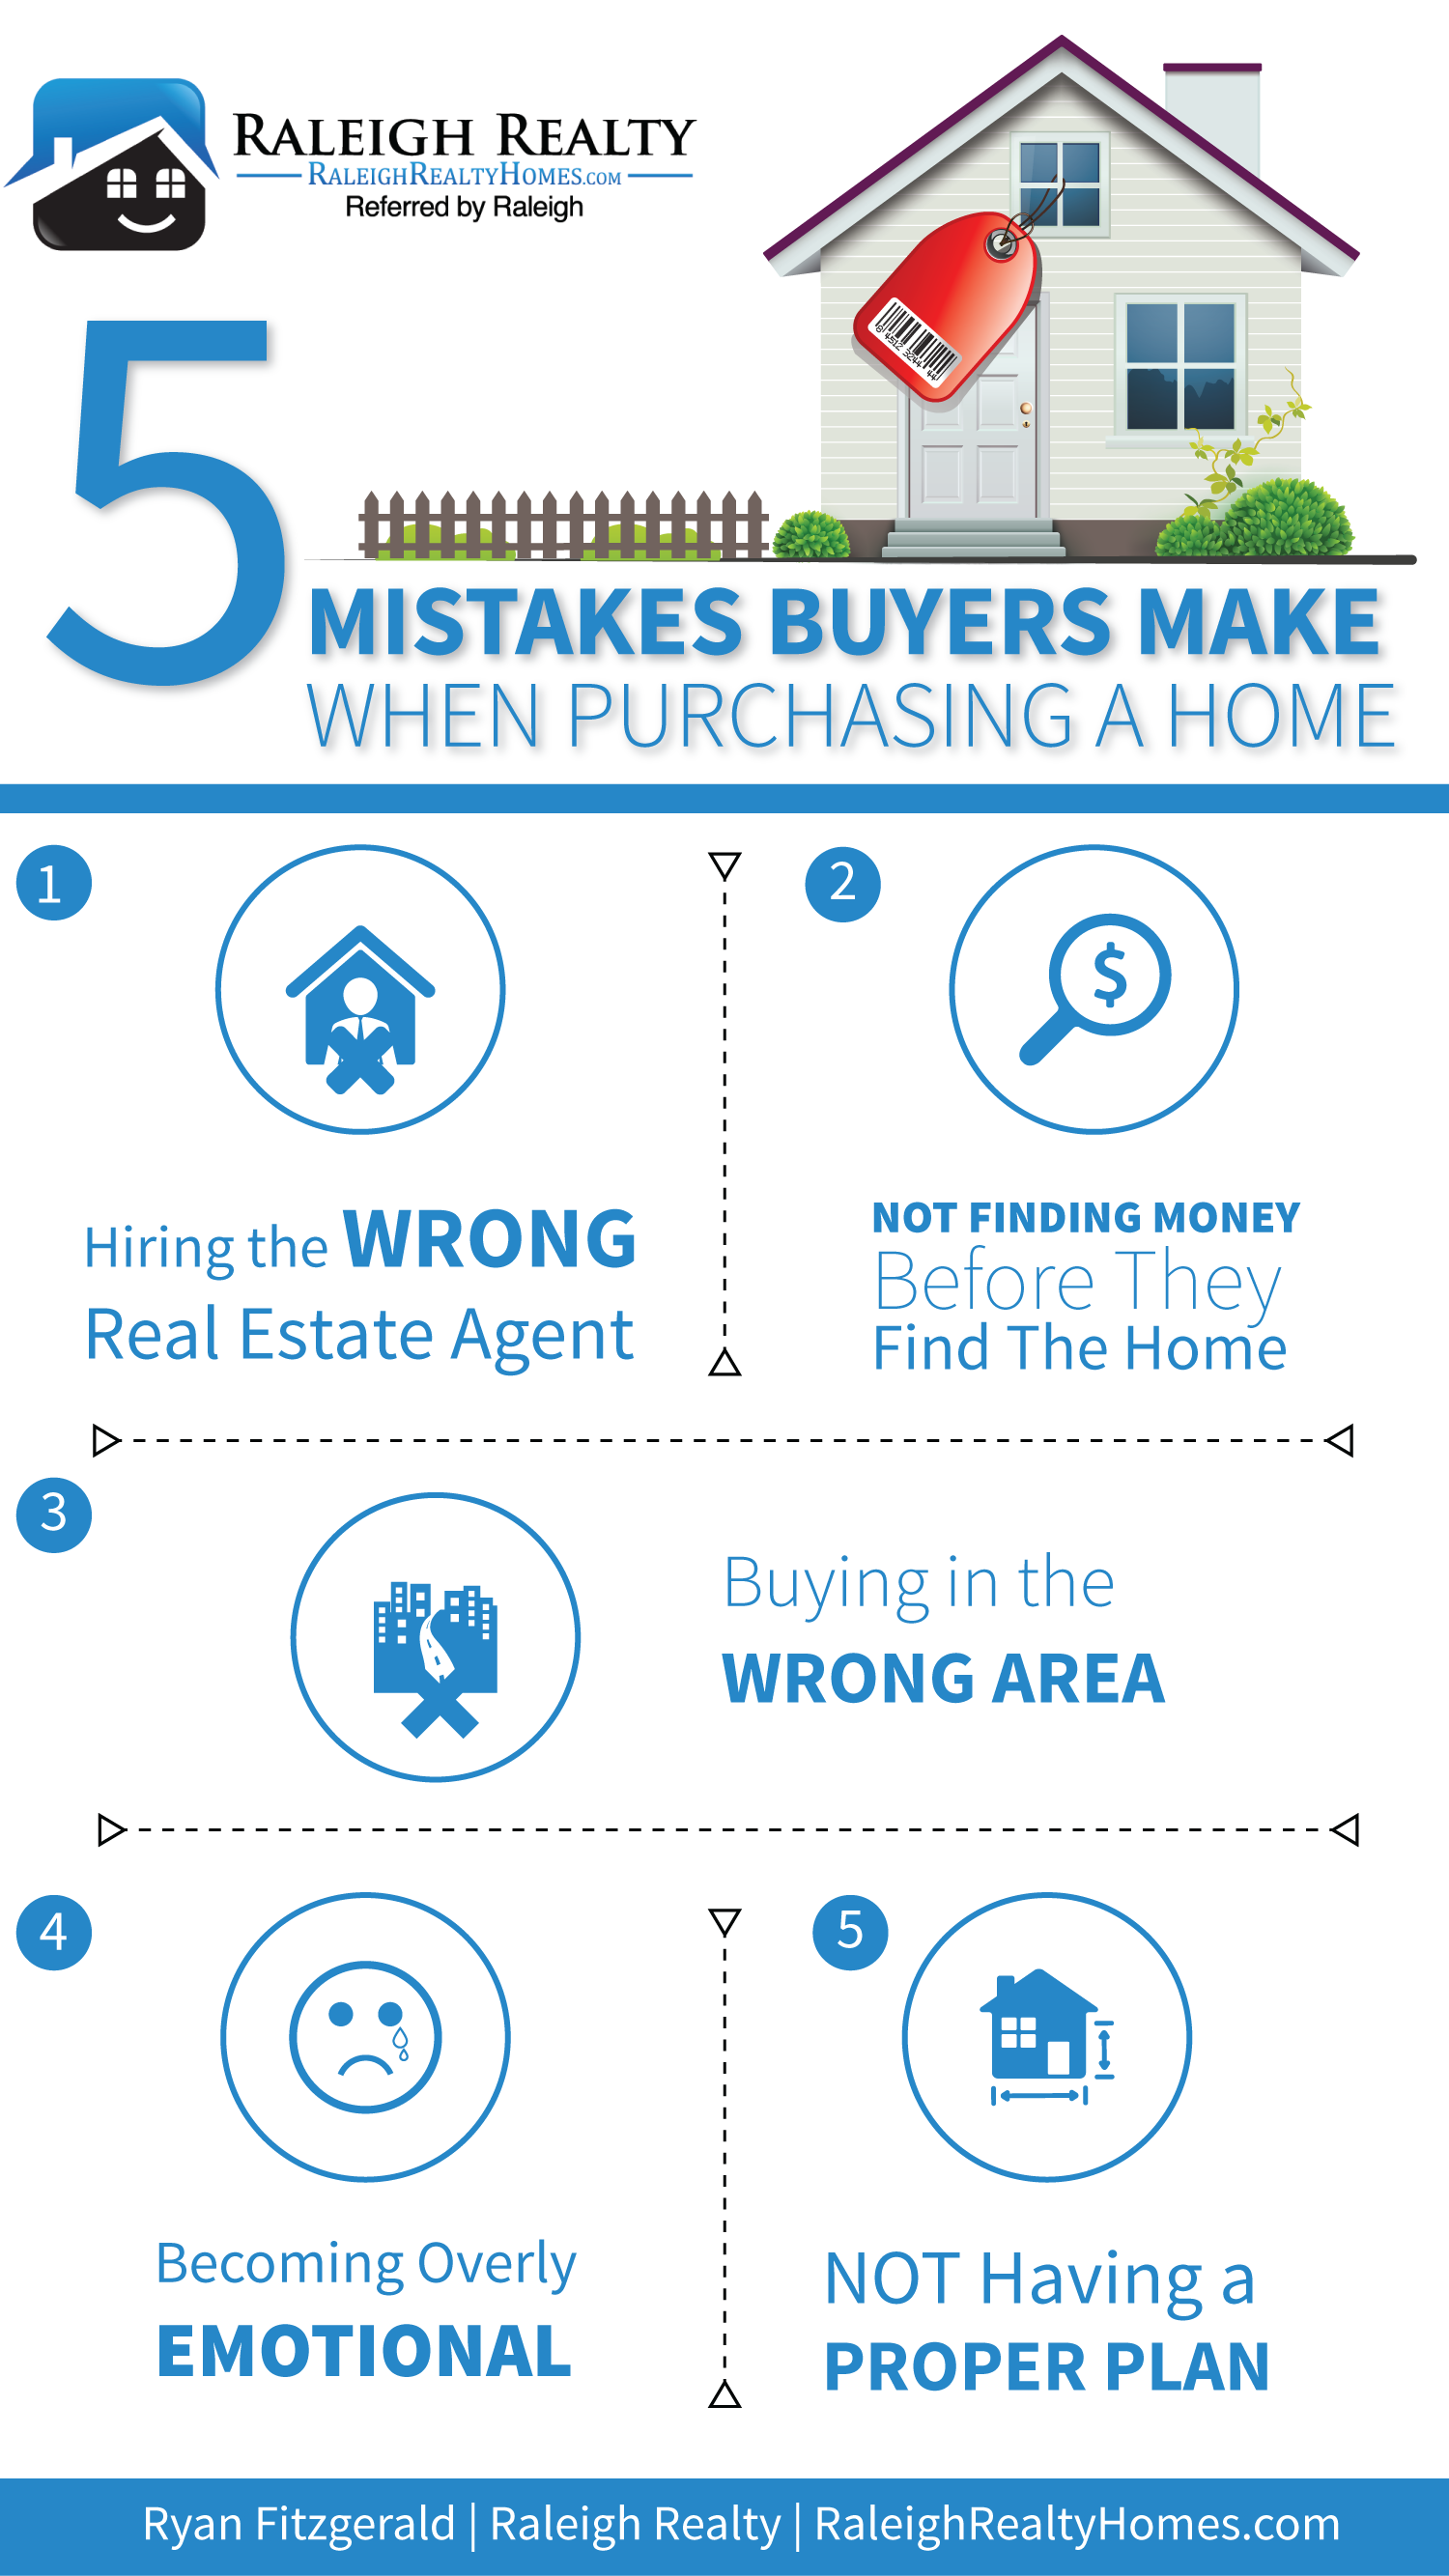 Mistakes buyers make when purchasing a home for sale in Raleigh NC